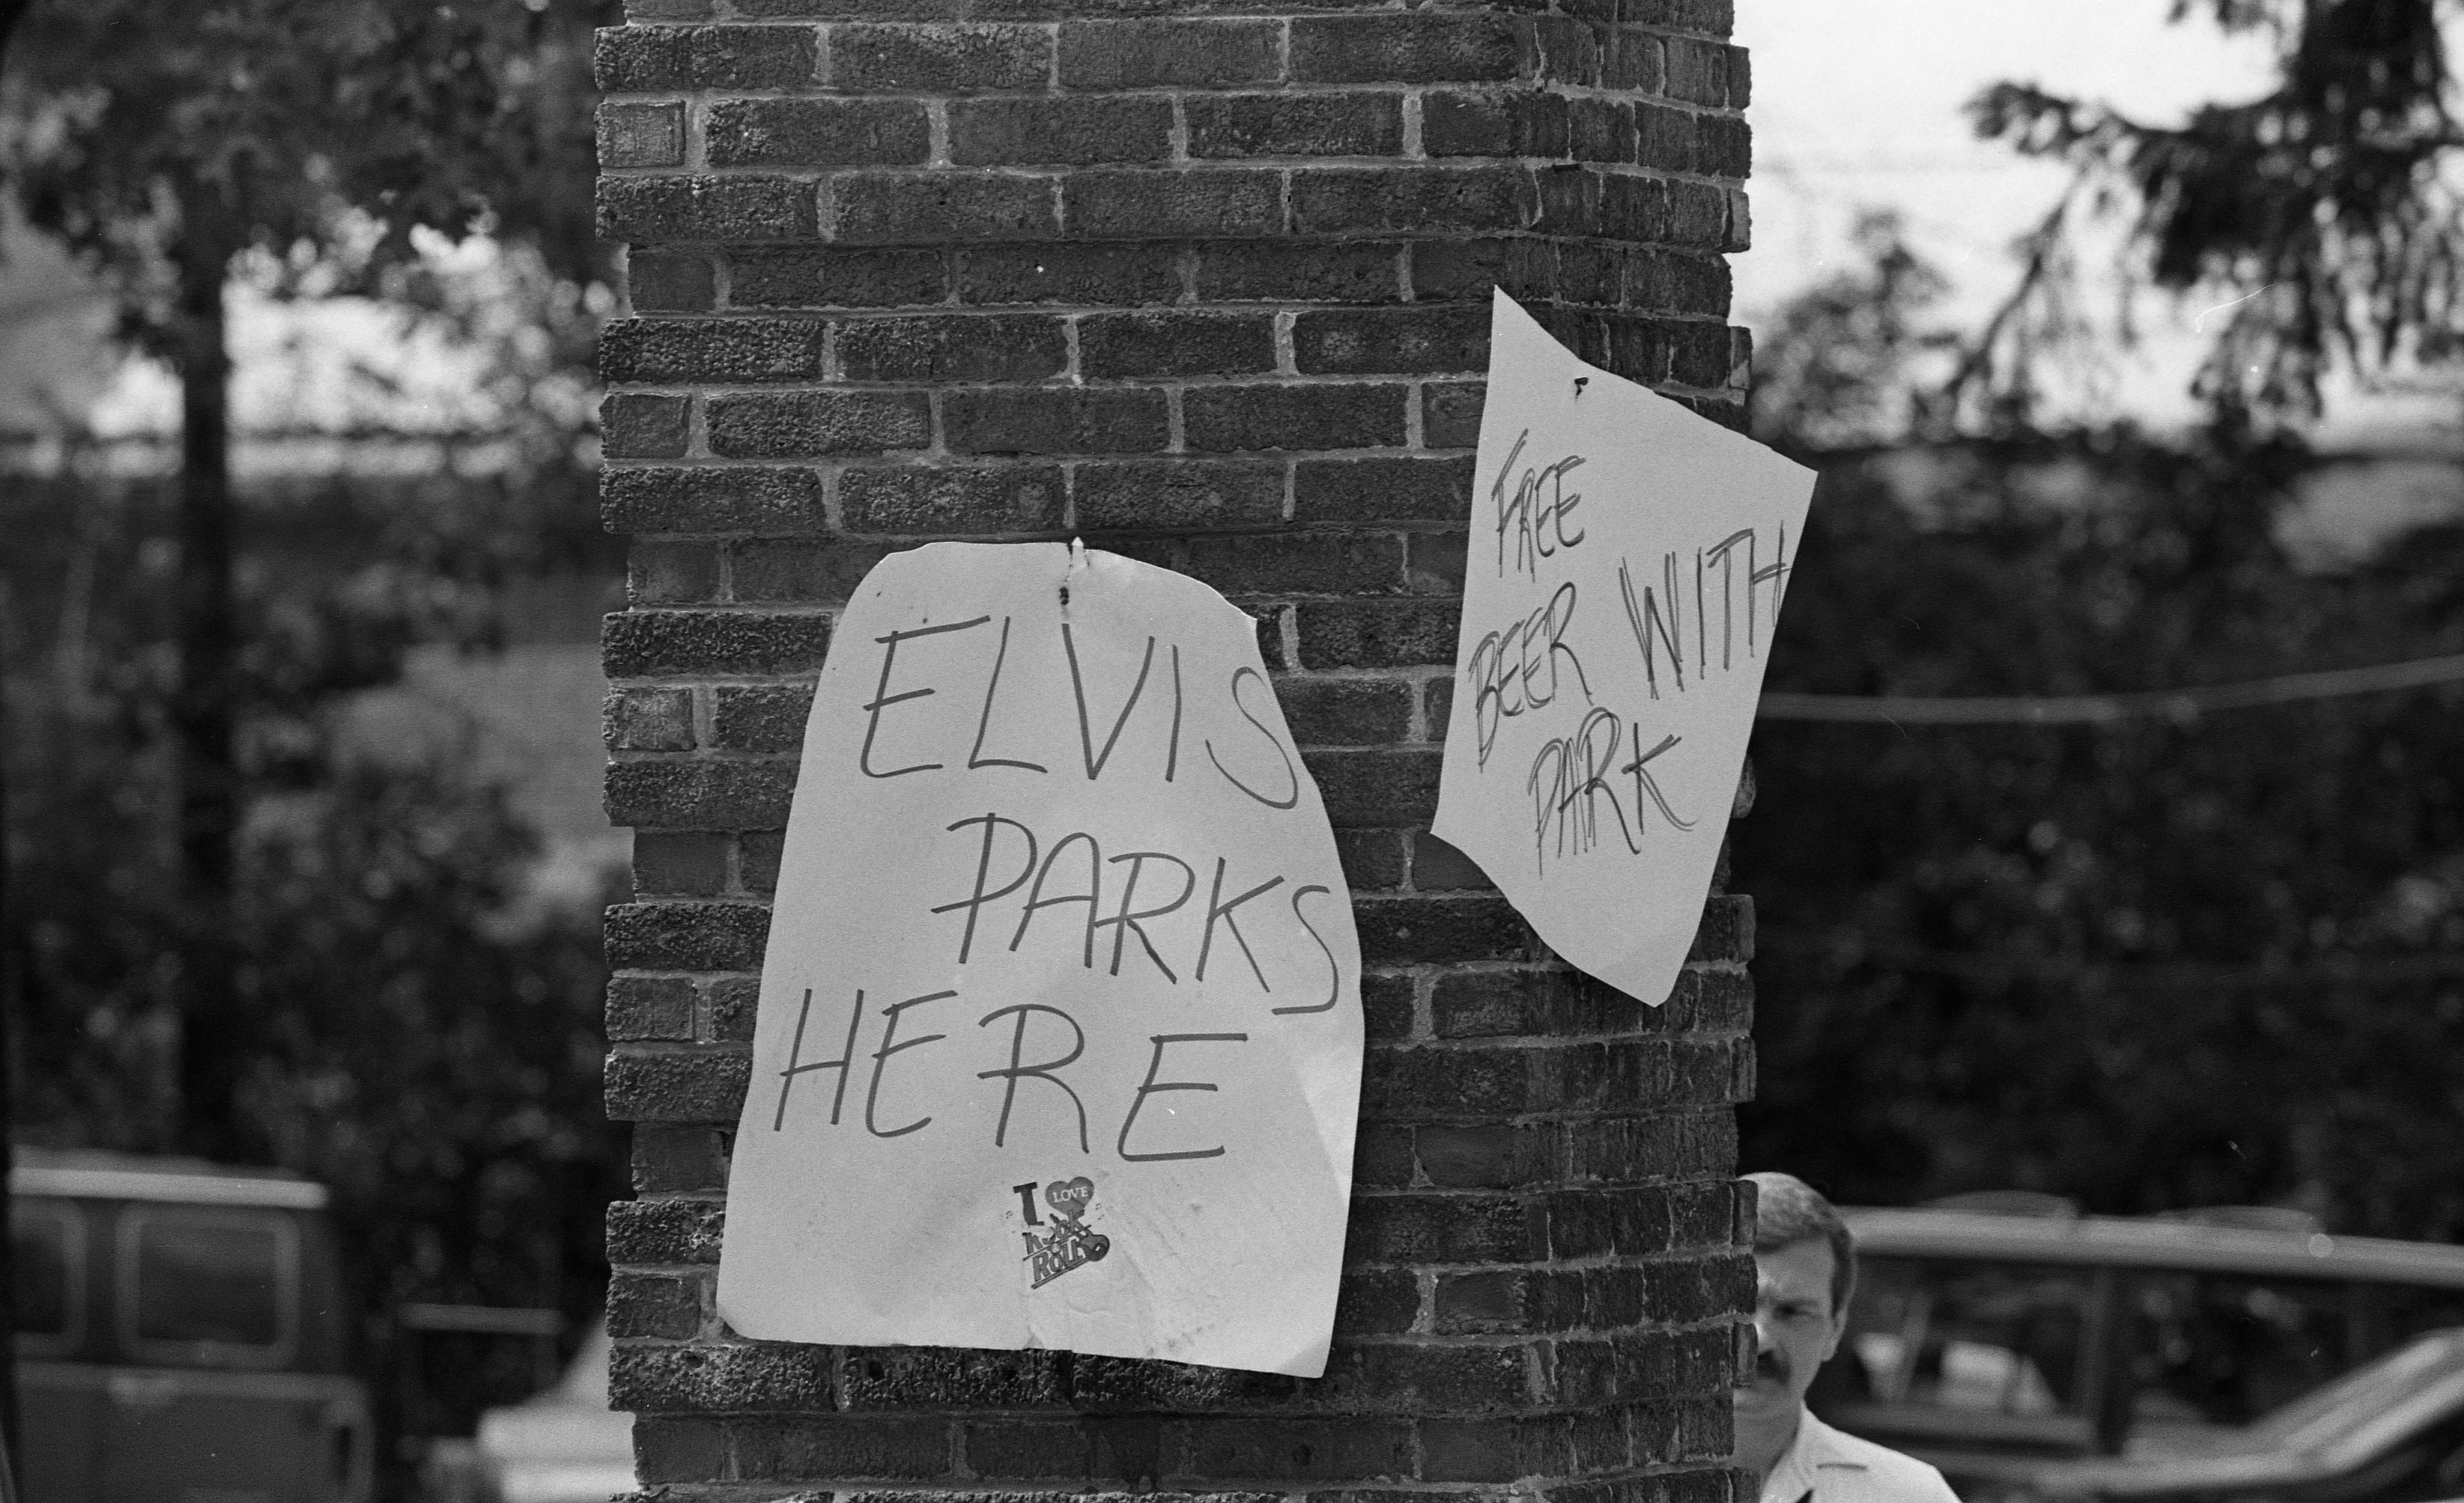 Chi Phi Fraternity Brothers With Sign To Lure Art Fair Parking Customers, July 1988 image